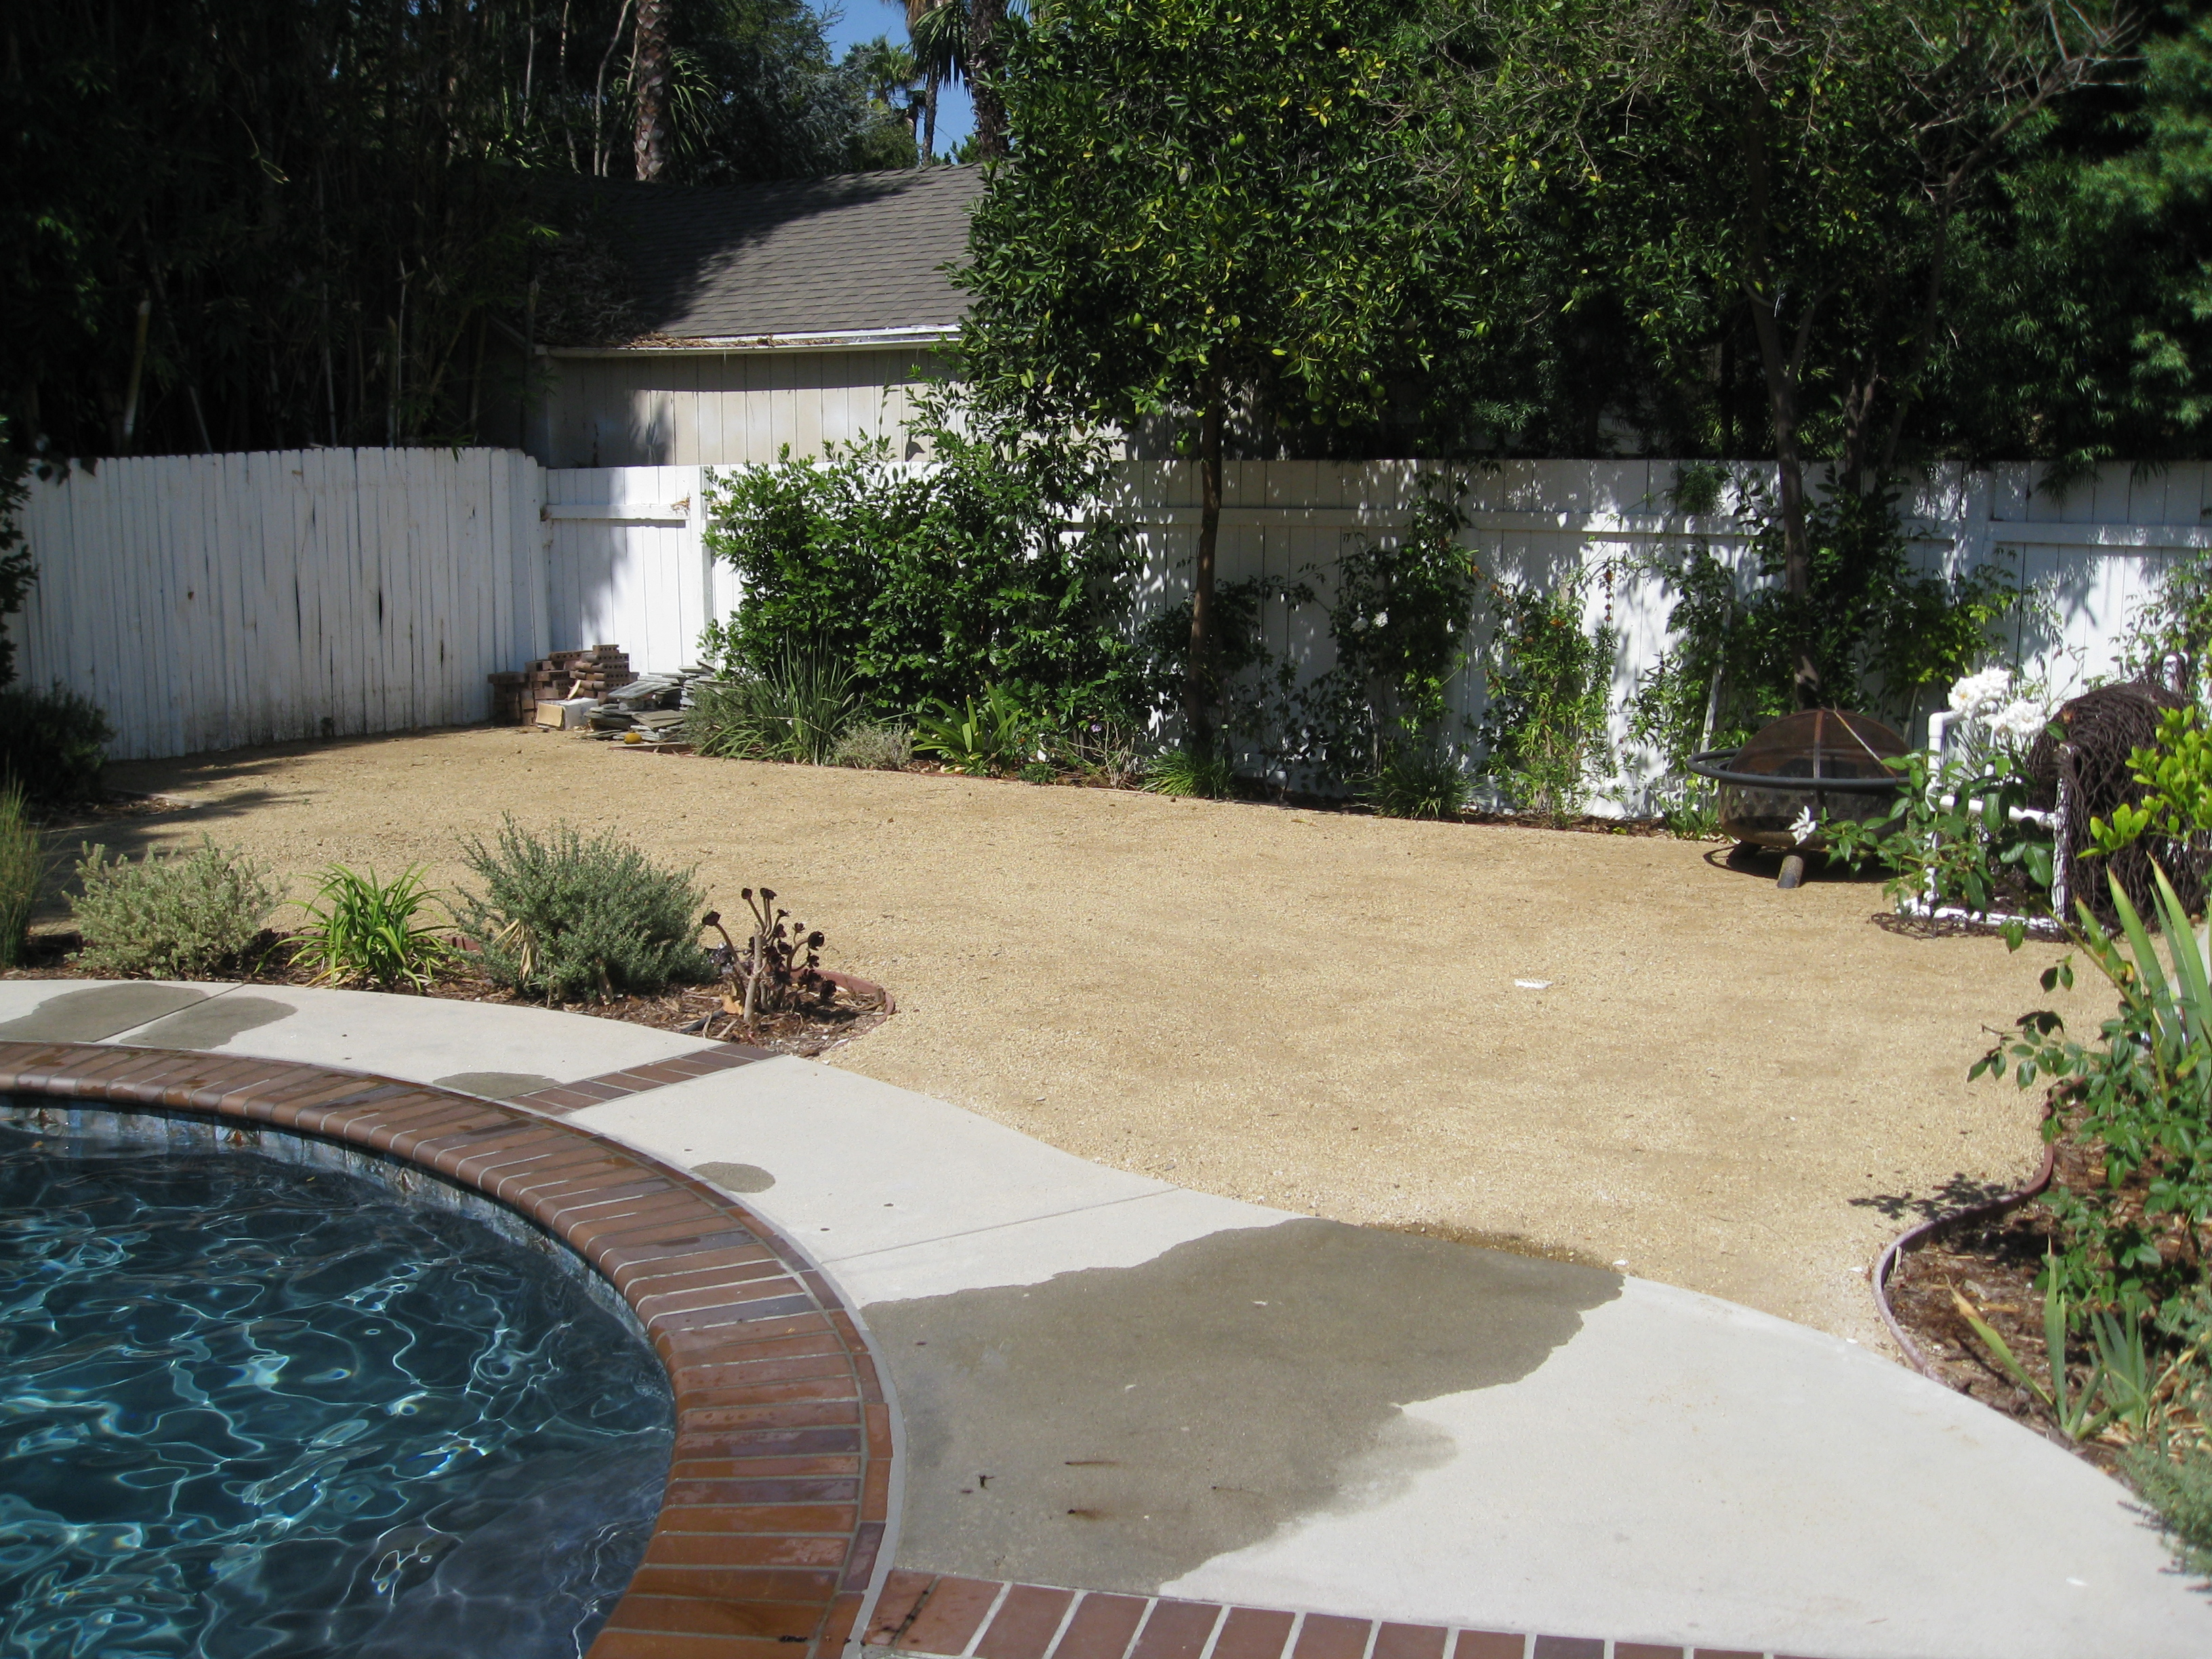 The homeowner recently remodeled the property and left a blank canvas for a new vegetable garden.